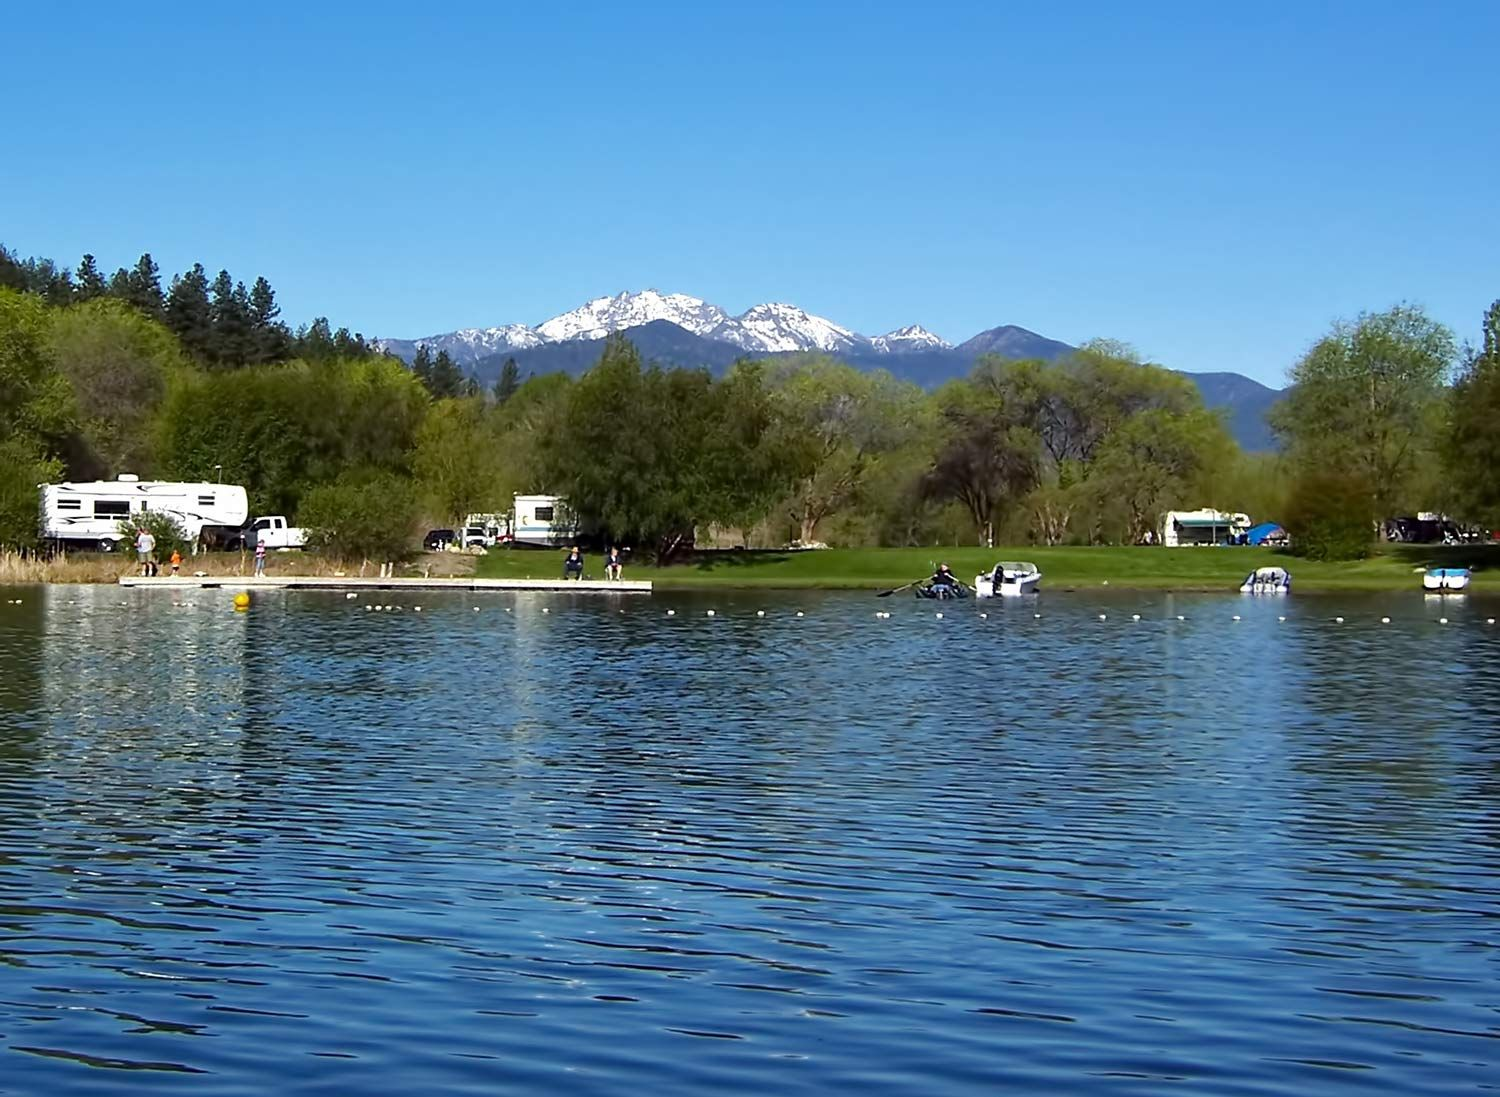 100 spokane koa find campgrounds near home tucannon for Fishing campsites near me